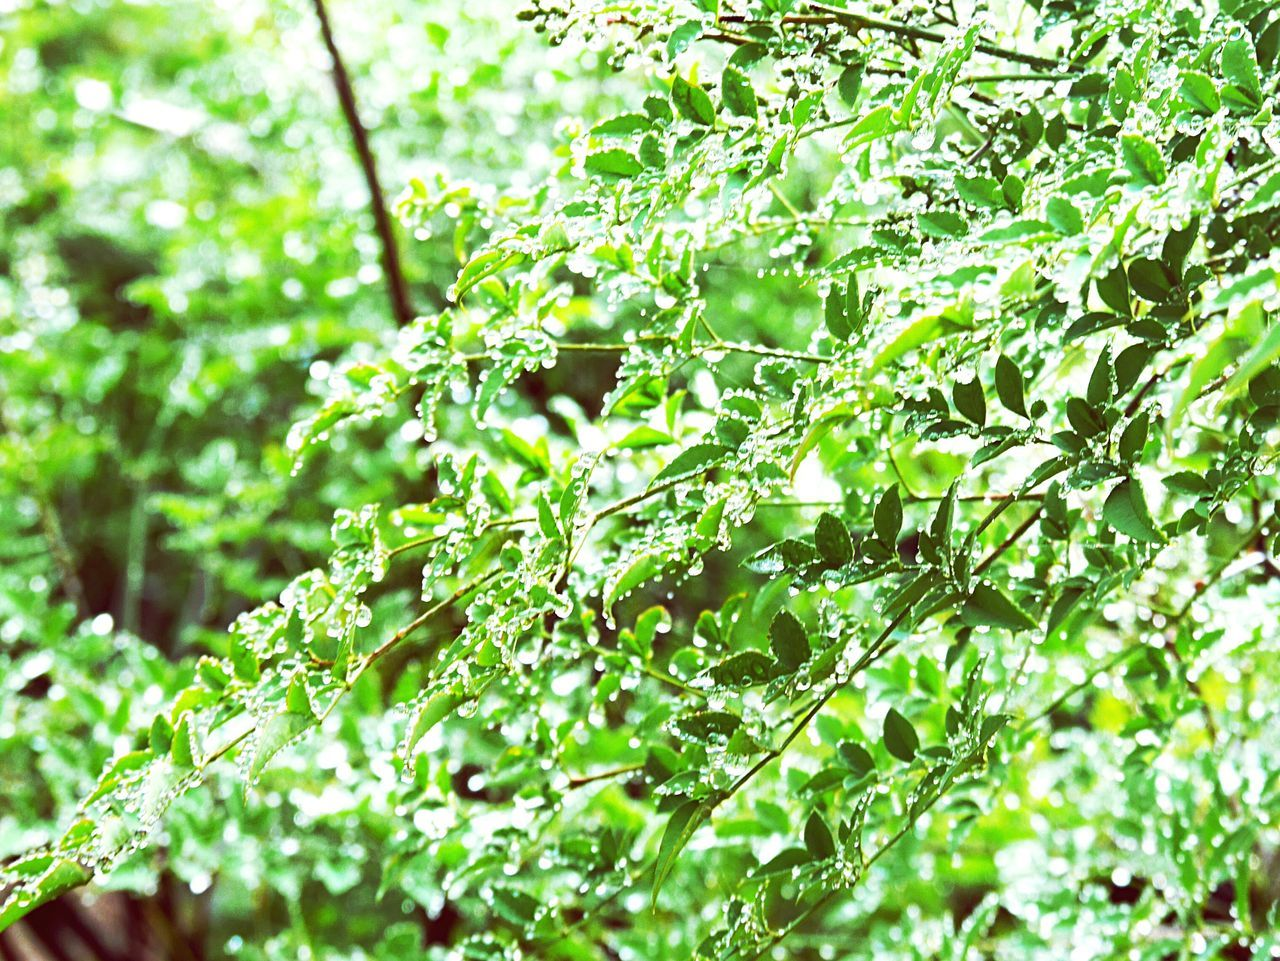 Beautiful Plants Green Nature Water Drop Cool Happy Rein Outdoor Japanese  Tree Sky Mountain Worest